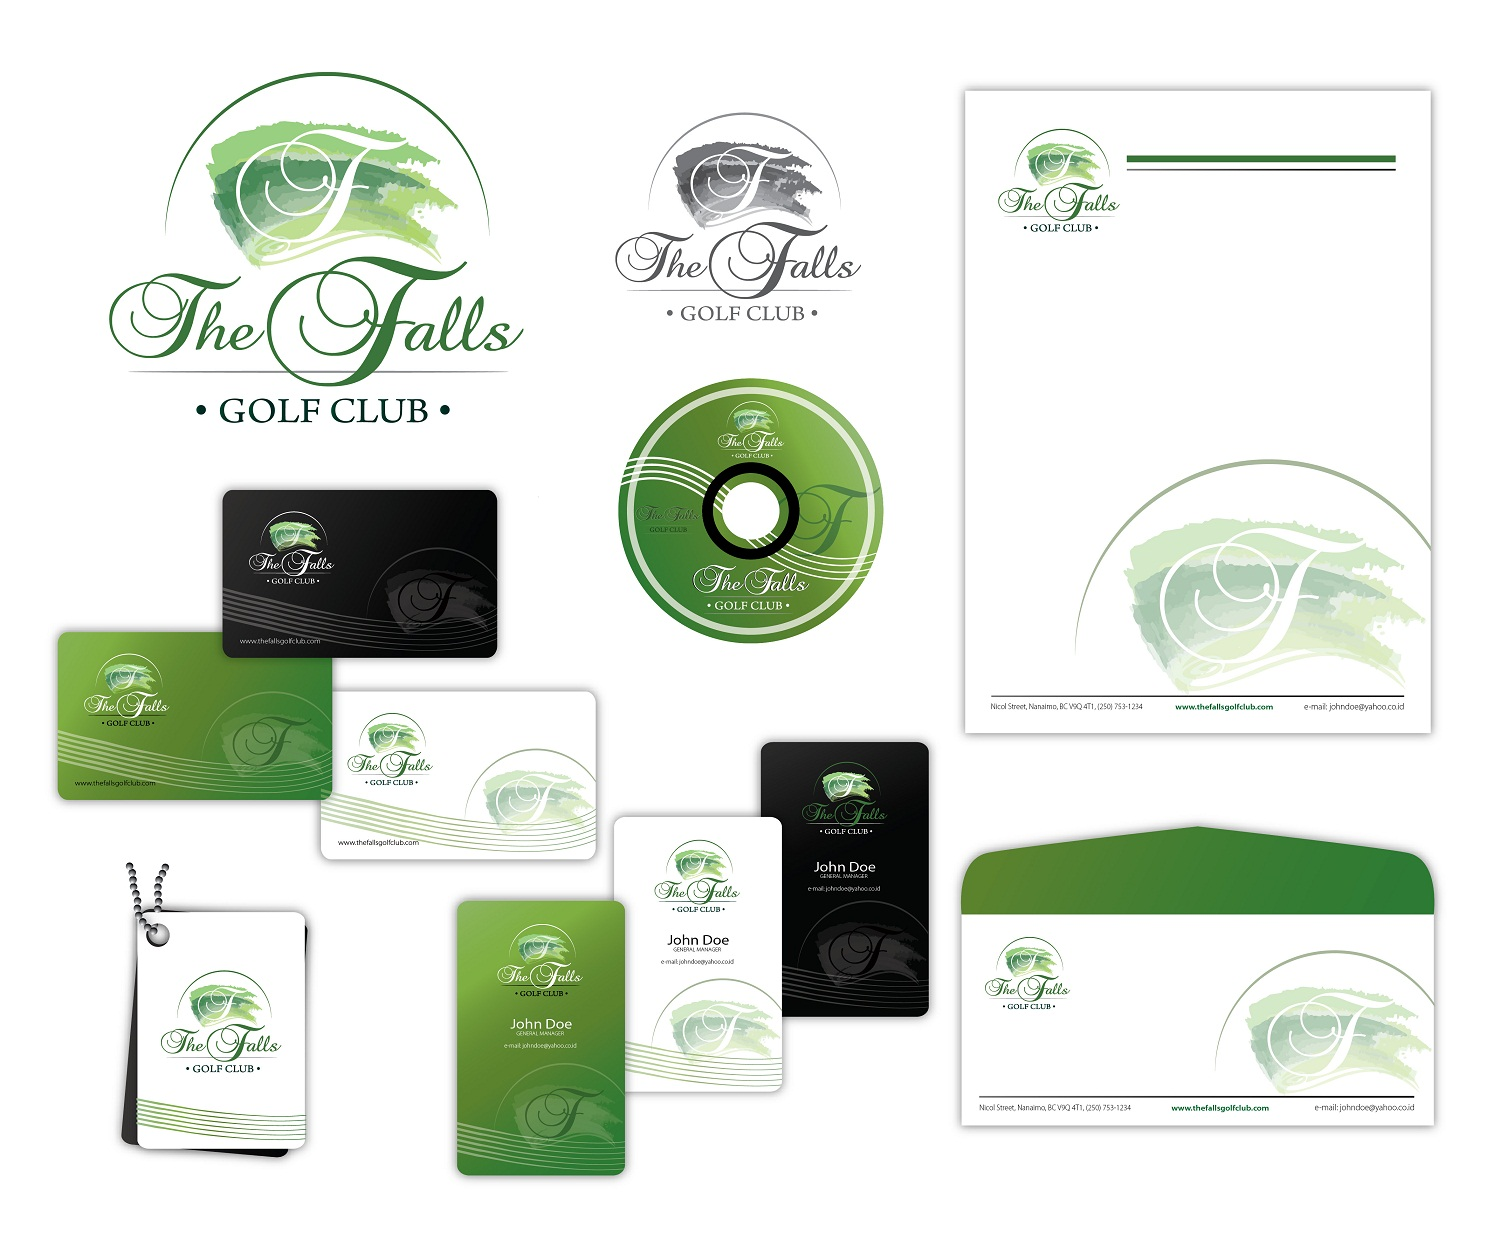 Logo Design by kowreck - Entry No. 34 in the Logo Design Contest The Falls Golf Club Logo Design.